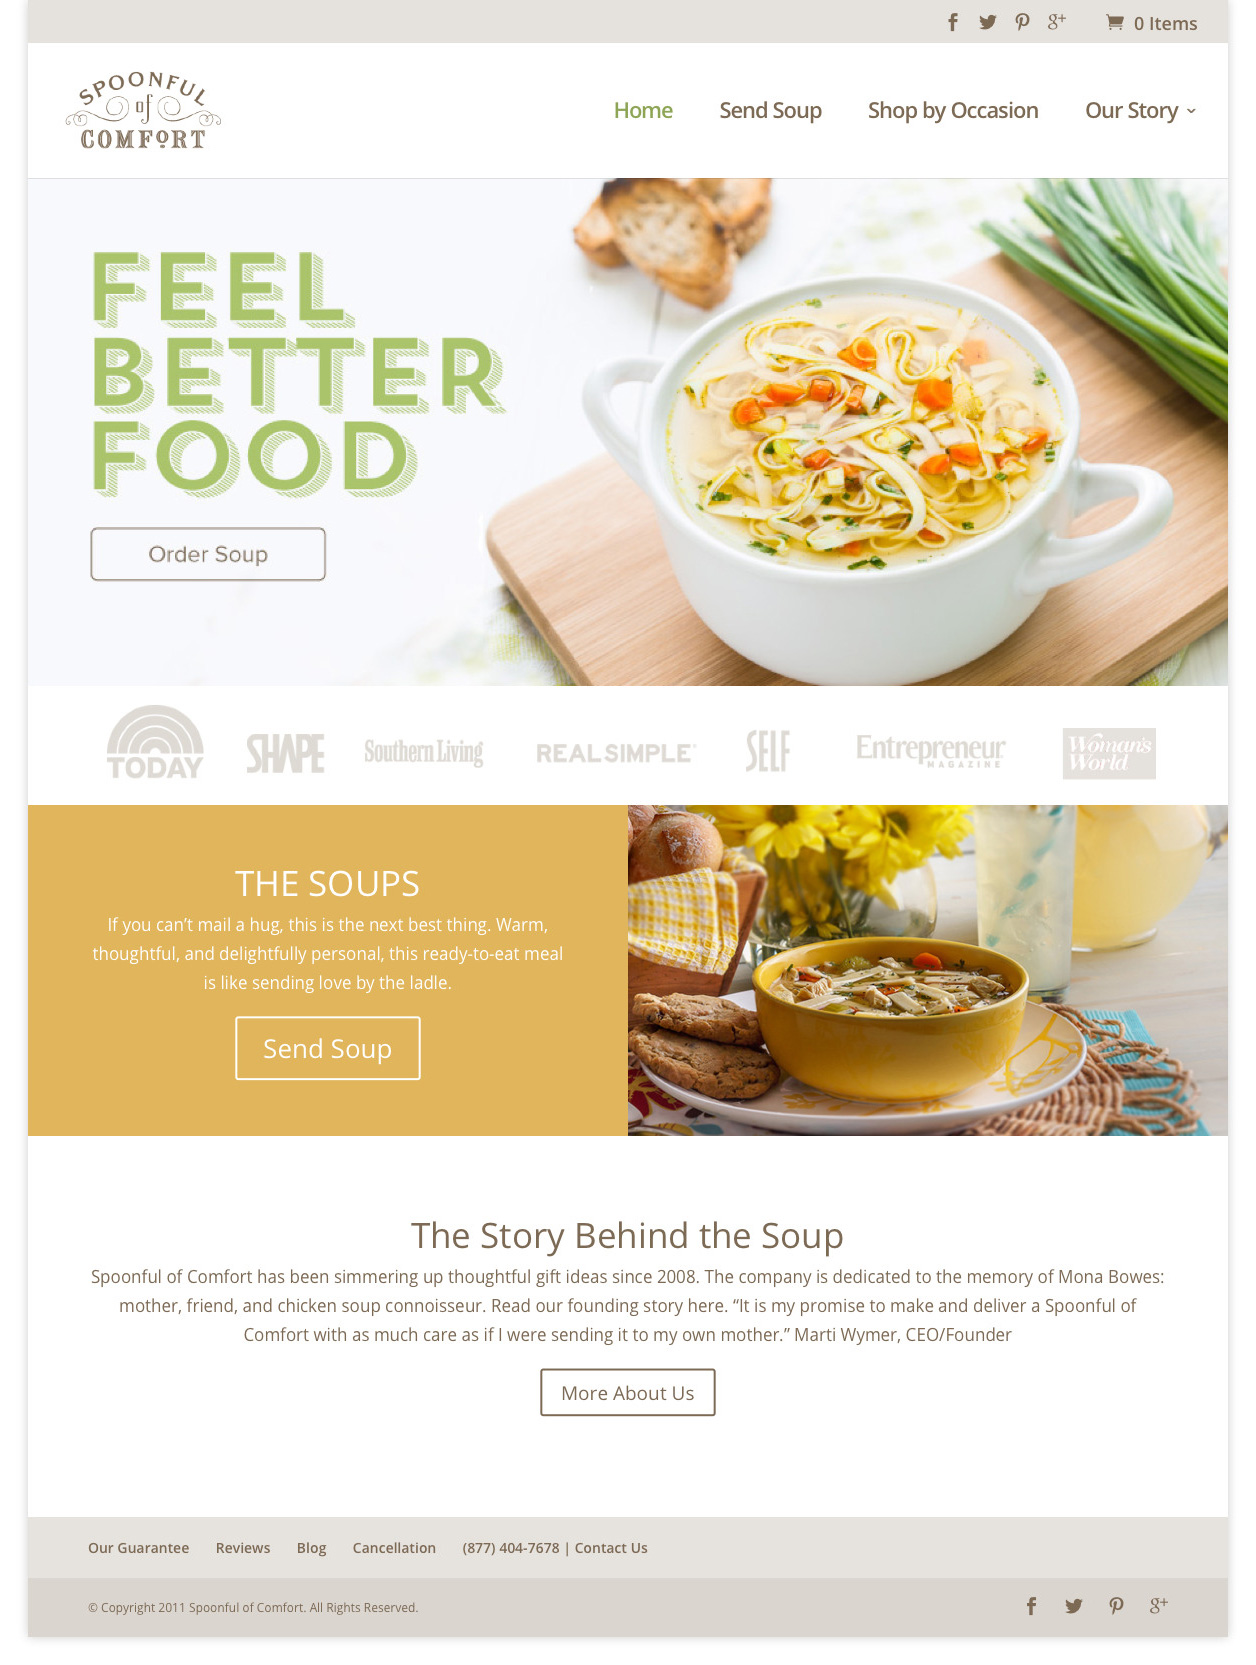 Spoonful of Comfort website design after